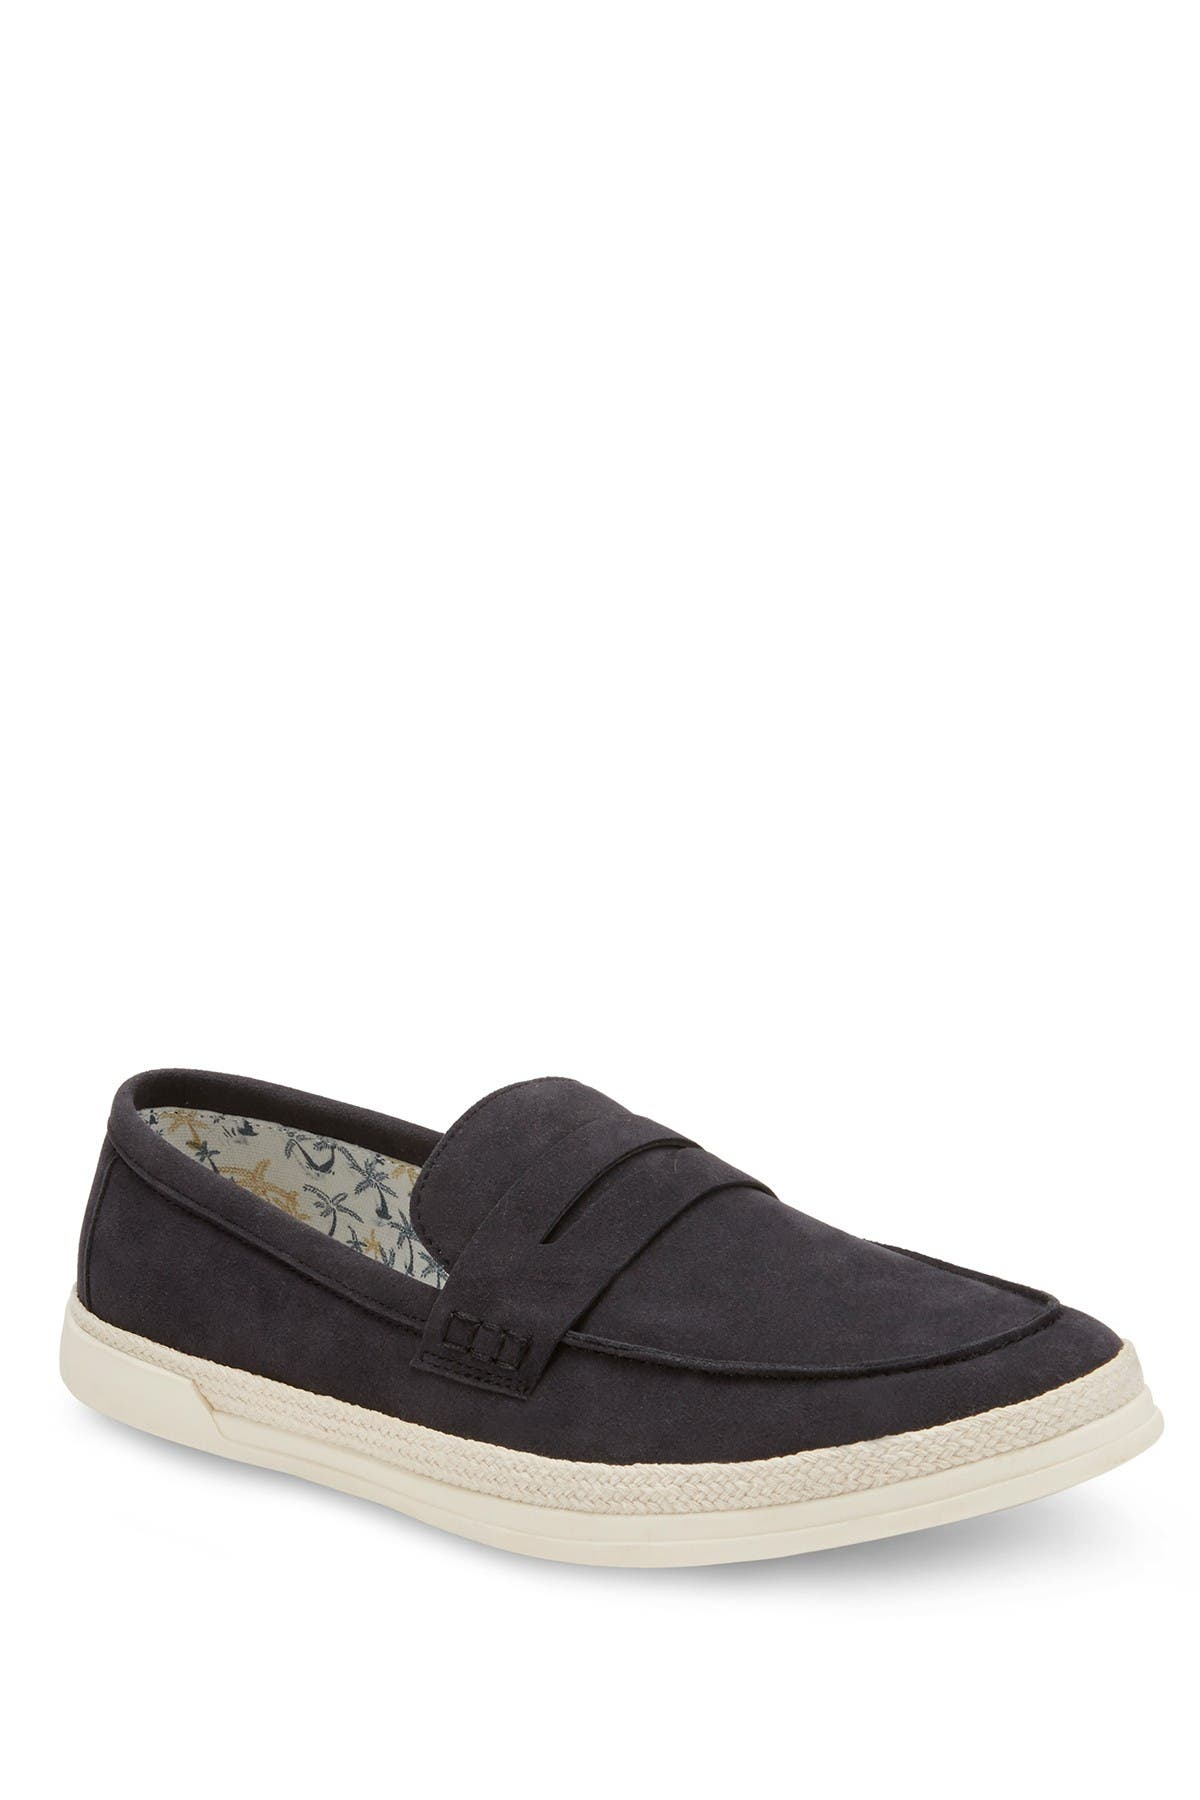 Image of XRAY Casual Slip On Moccasin